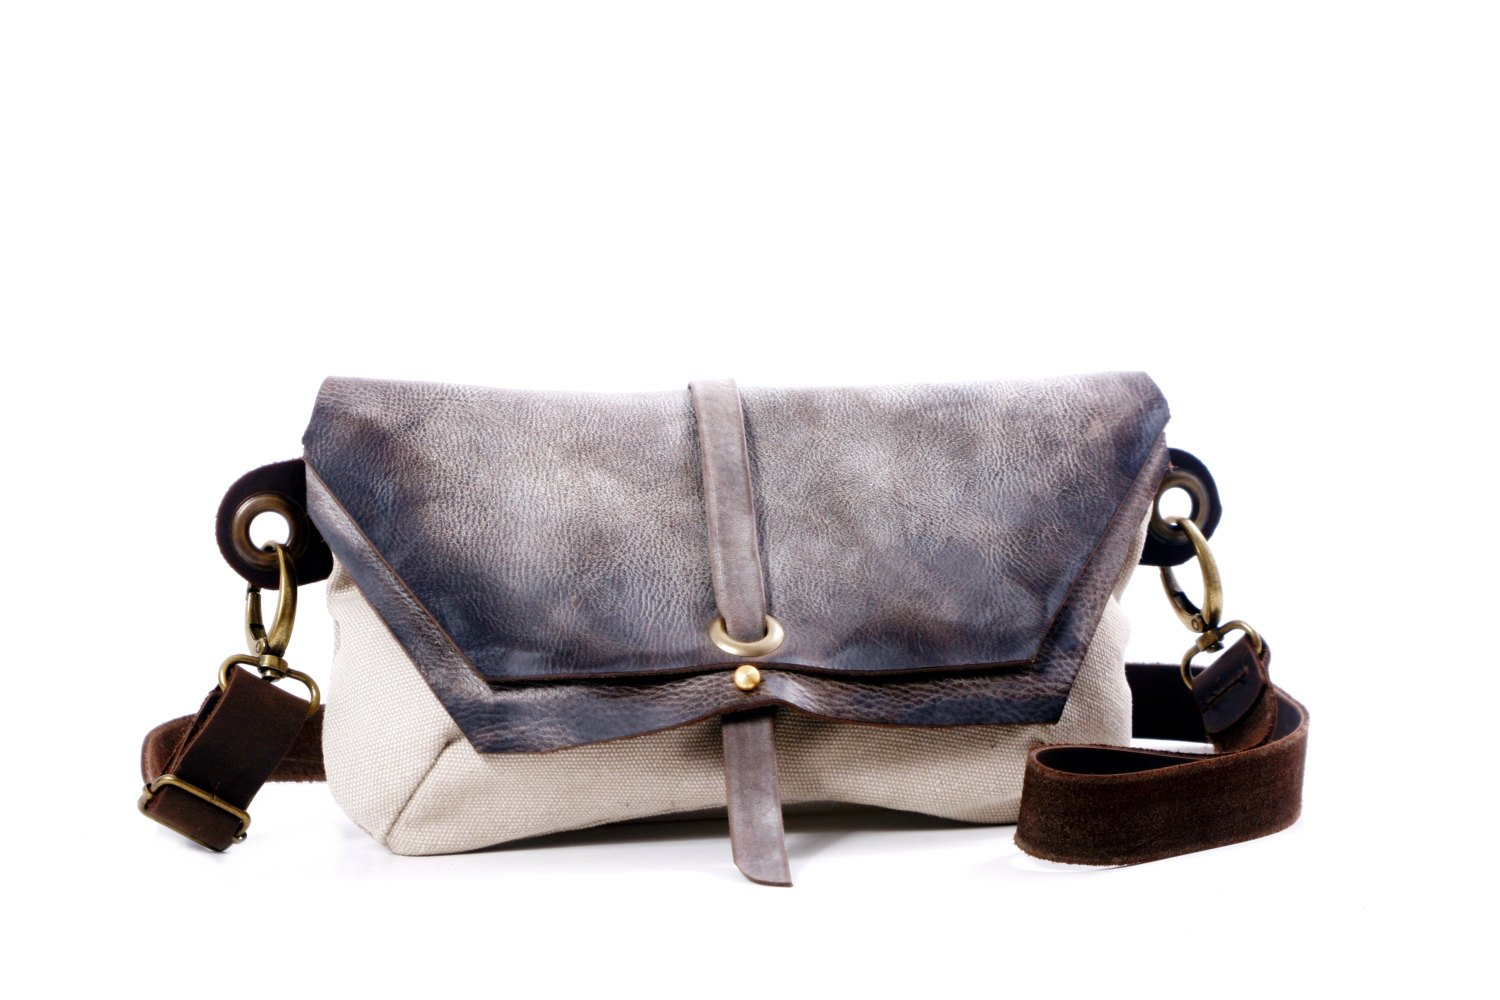 Gray Hip Bag - Fanny Pack - Traveler Bag - Utility Hip Belt - Hip Pouch-canvas and Faded Leather -Hadmade distress Leather Bag